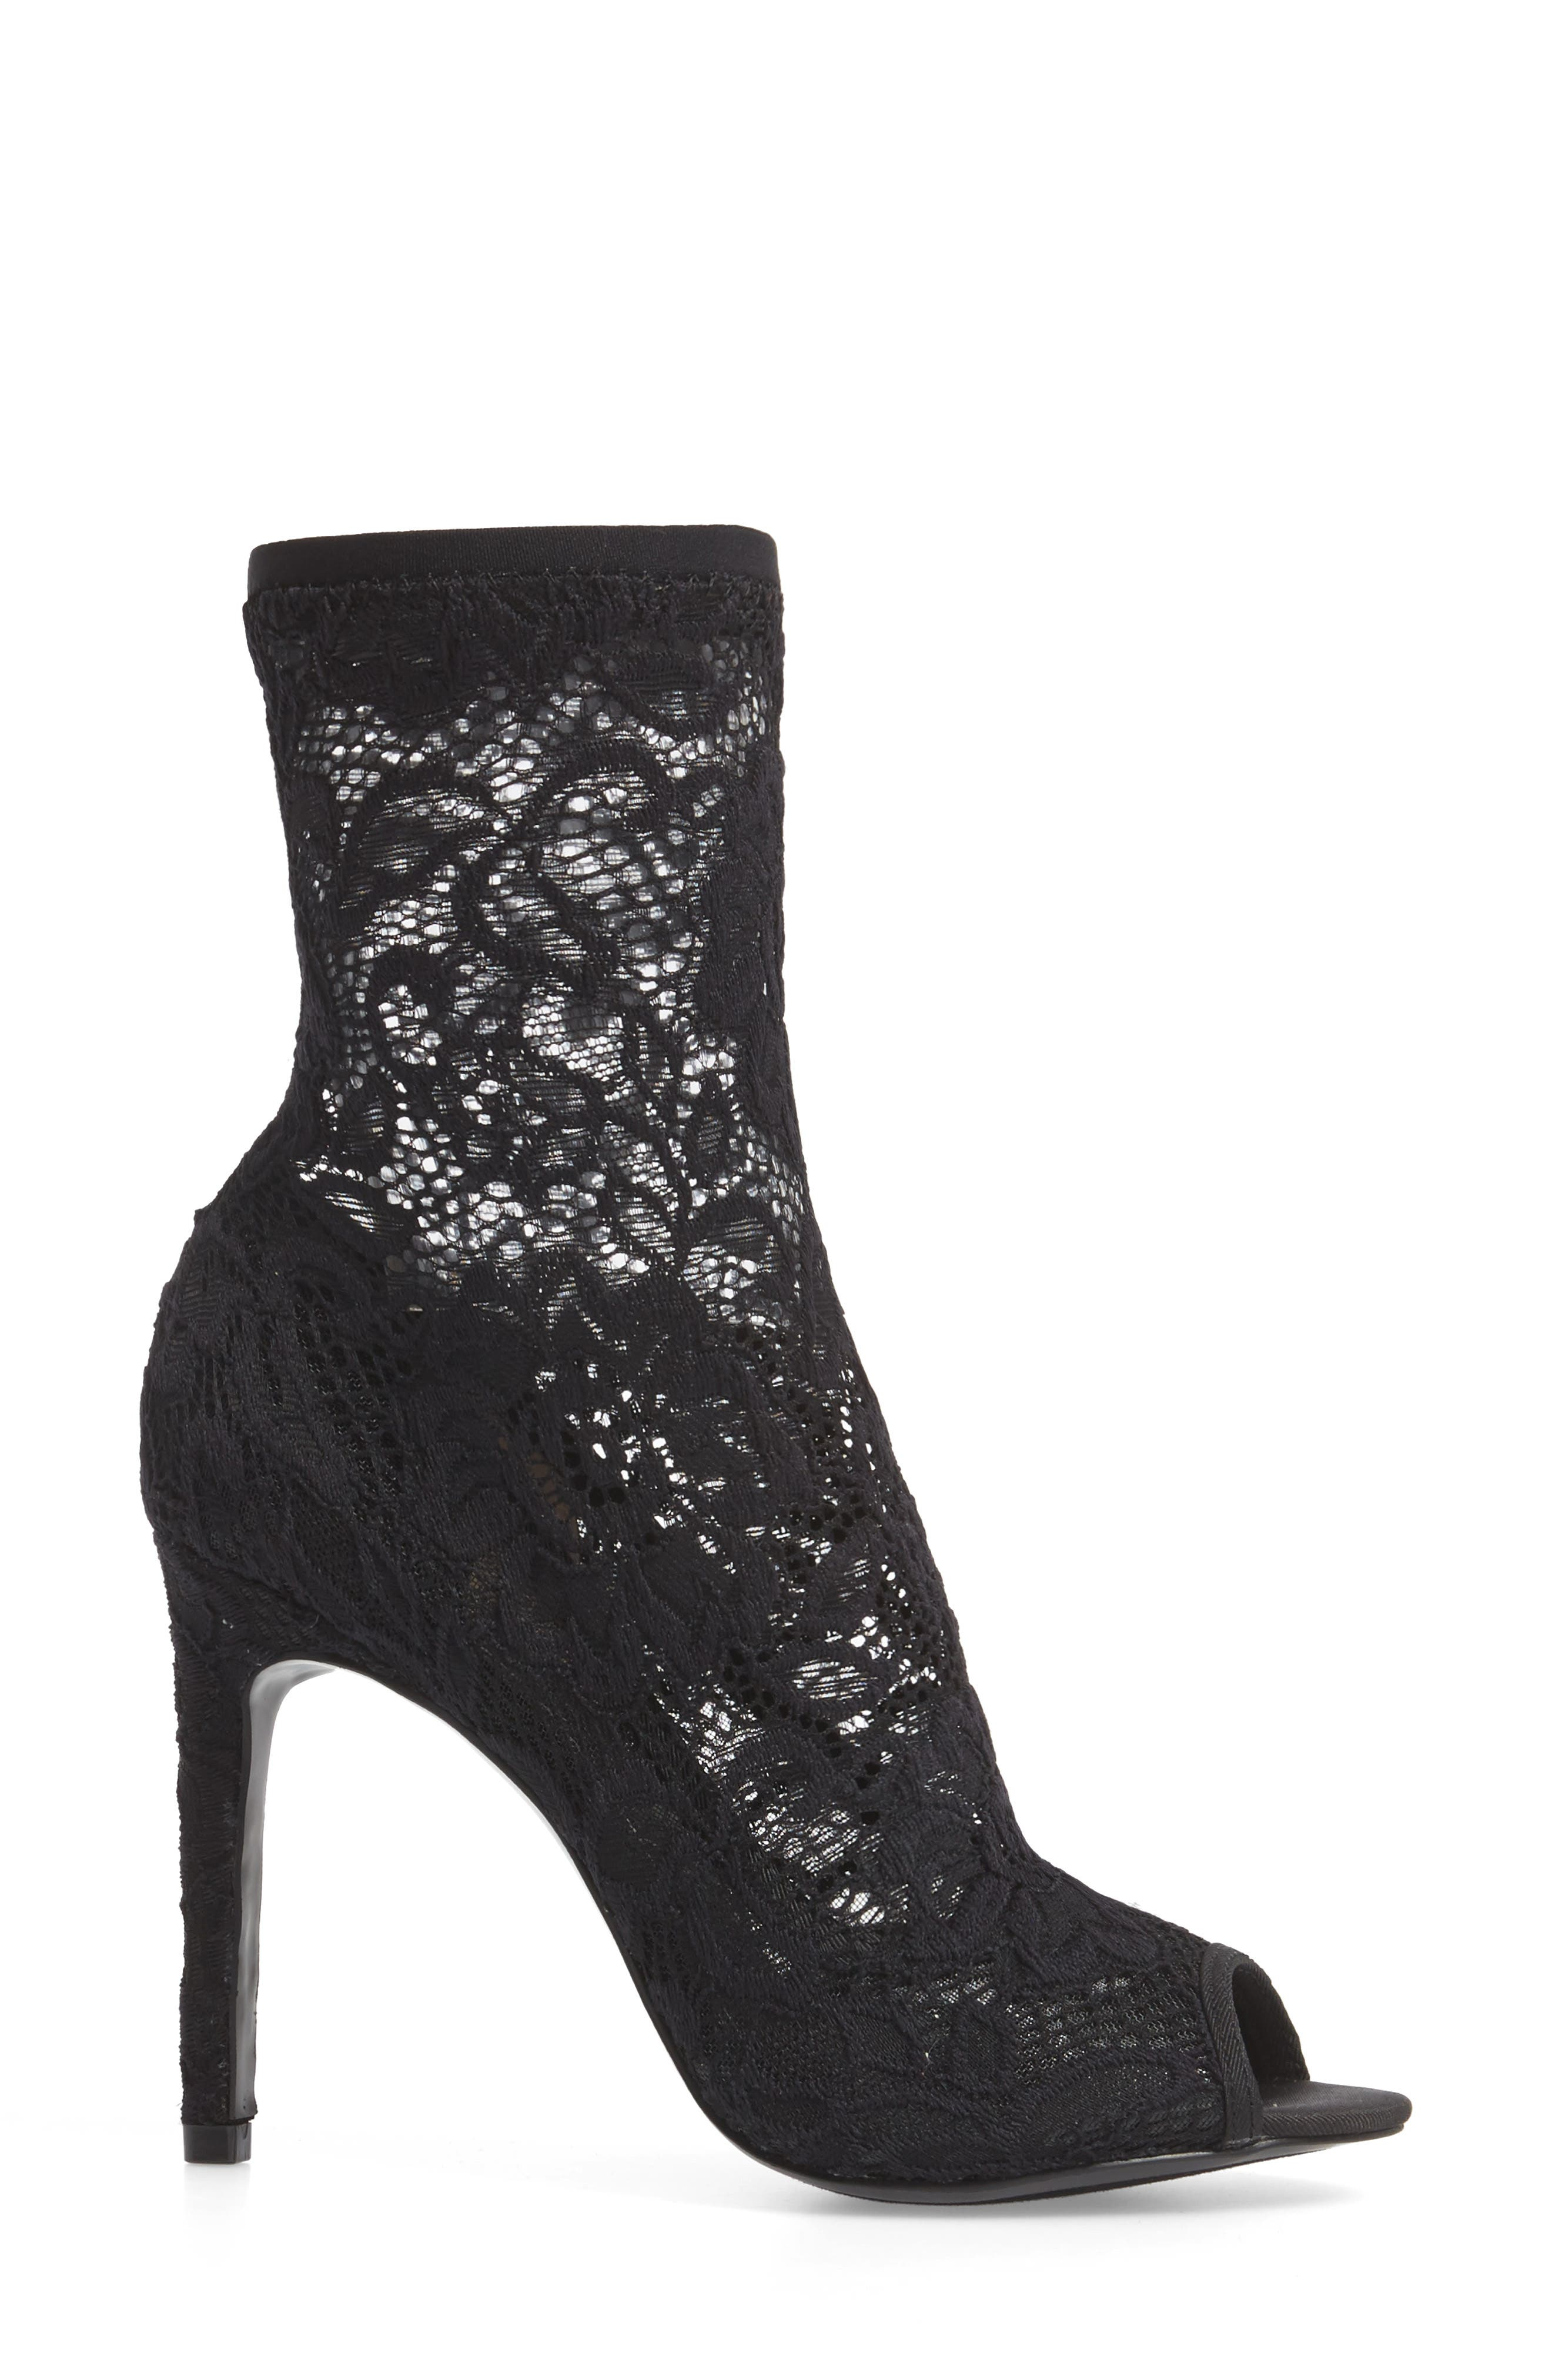 Imaginary Lace Sock Bootie,                             Alternate thumbnail 3, color,                             BLACK FABRIC